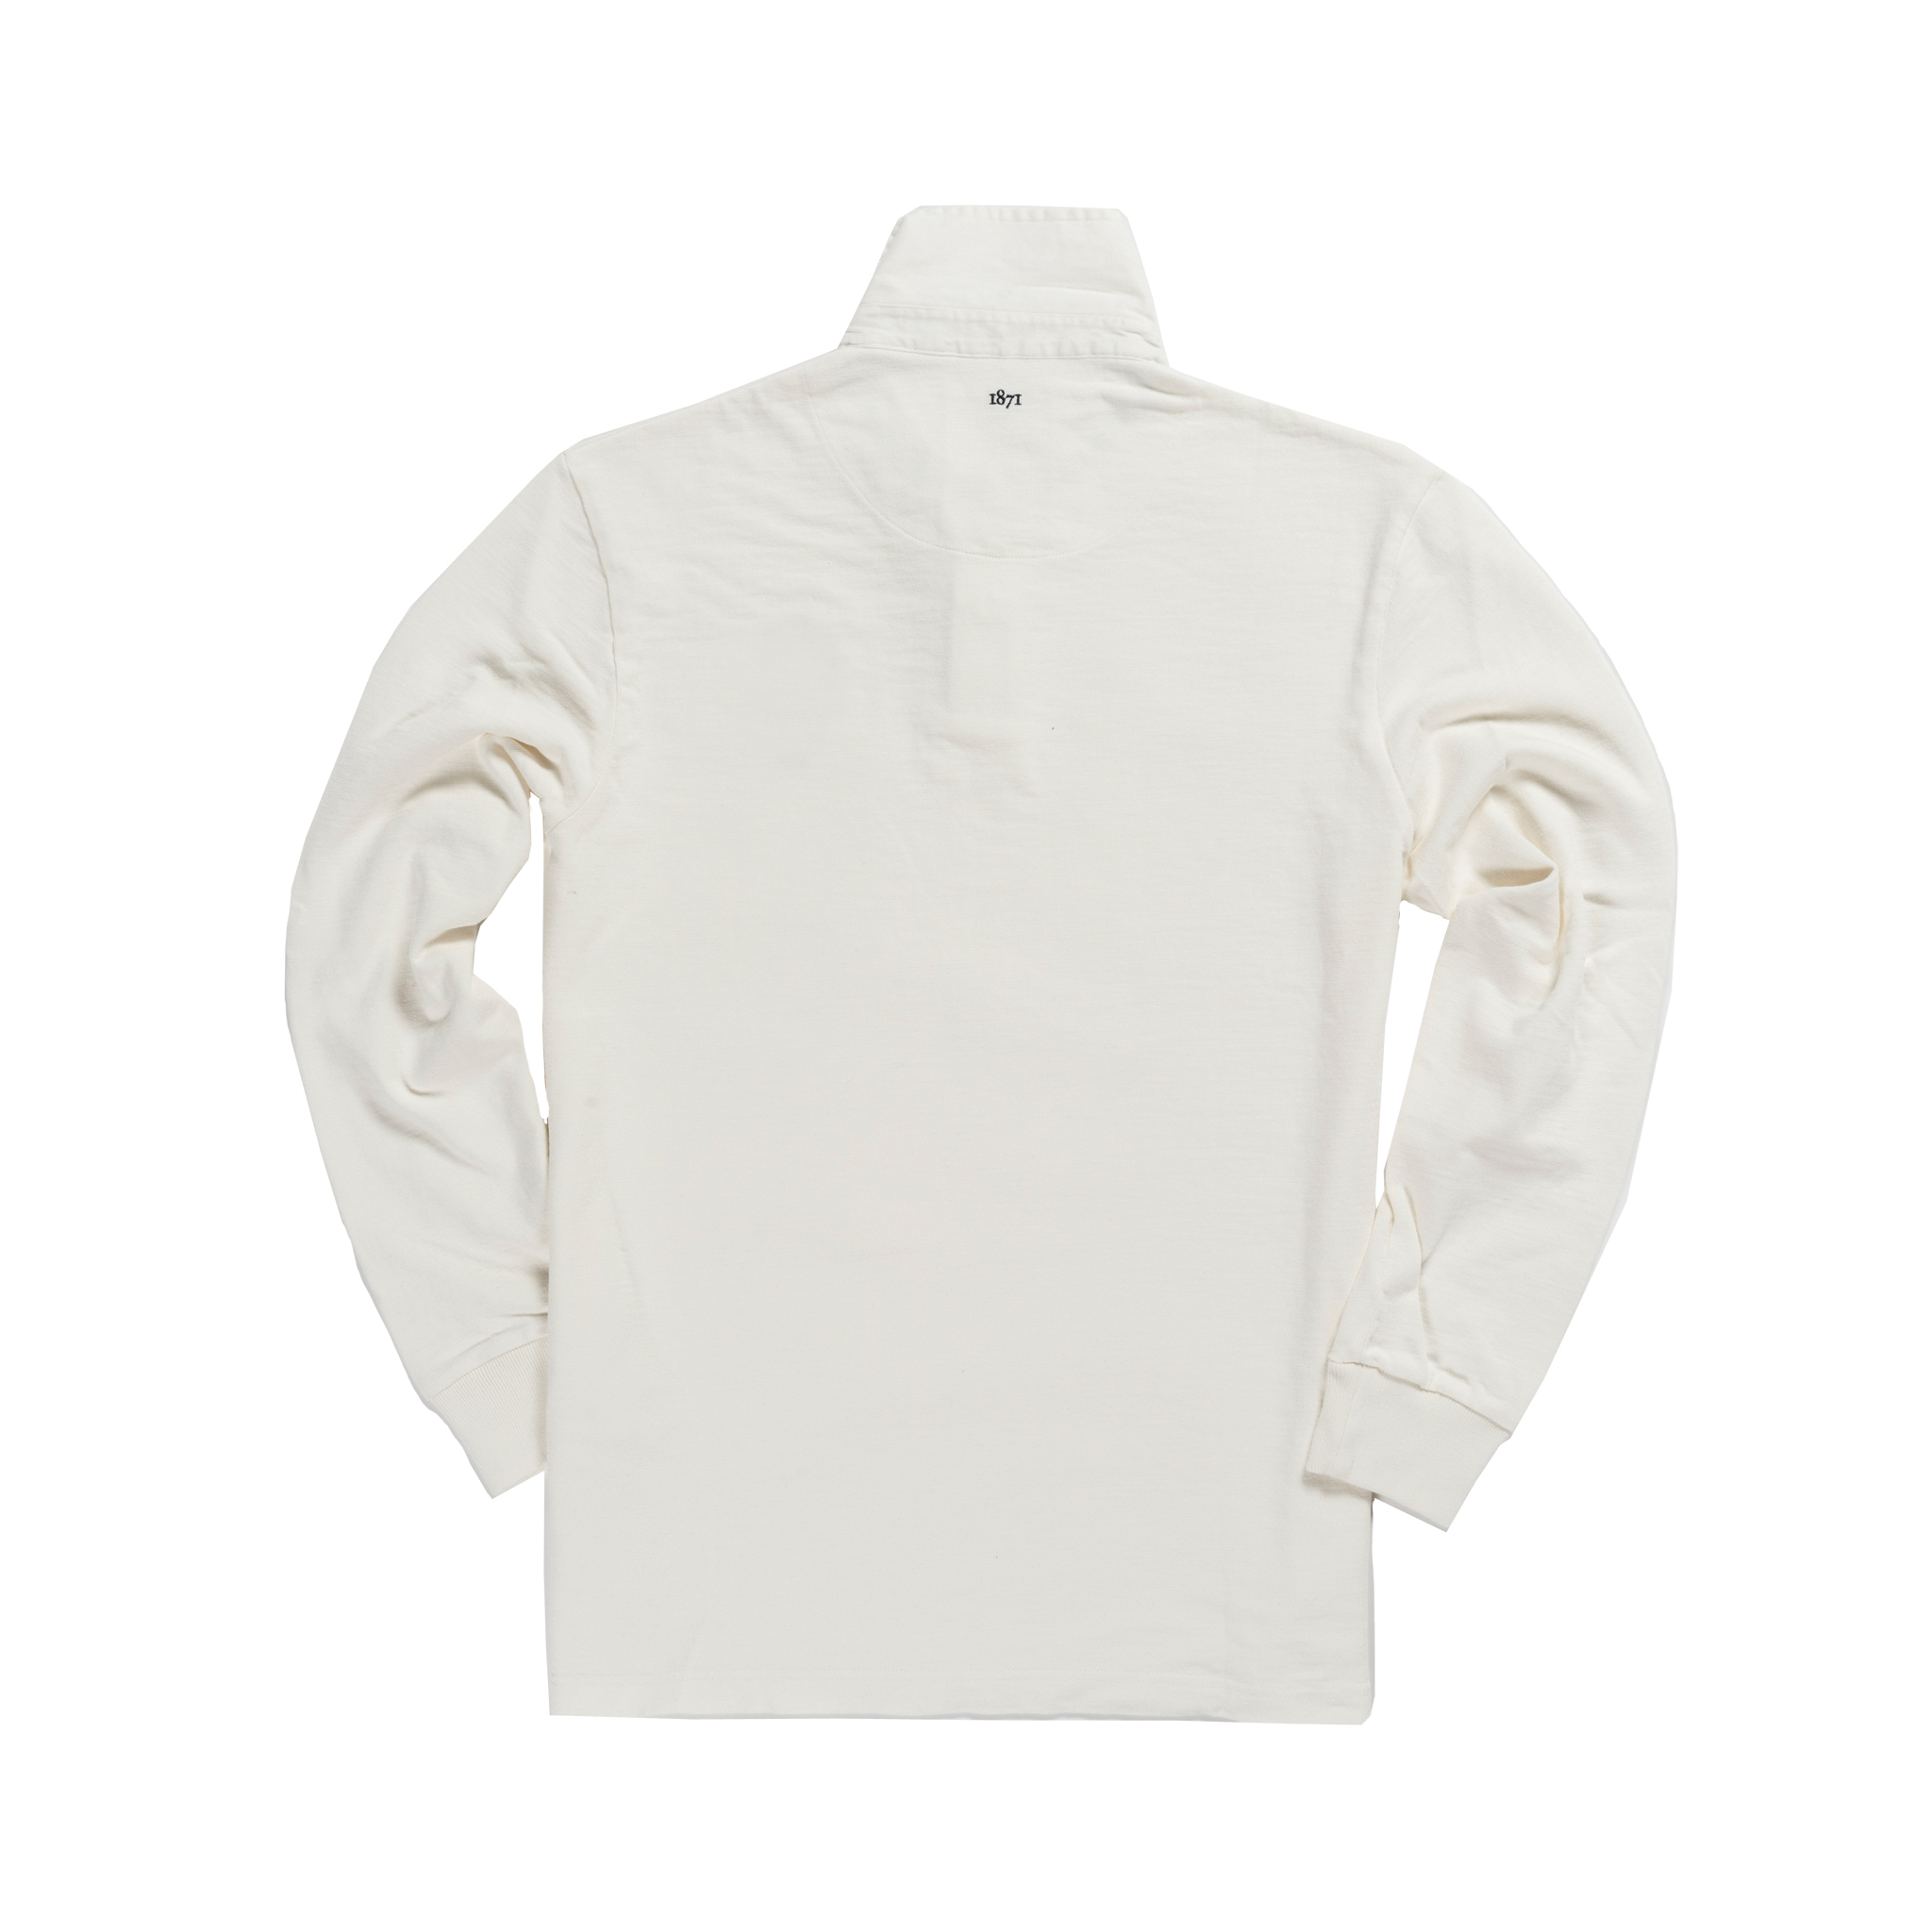 Oxford 1872 Rugby Shirt White_Back